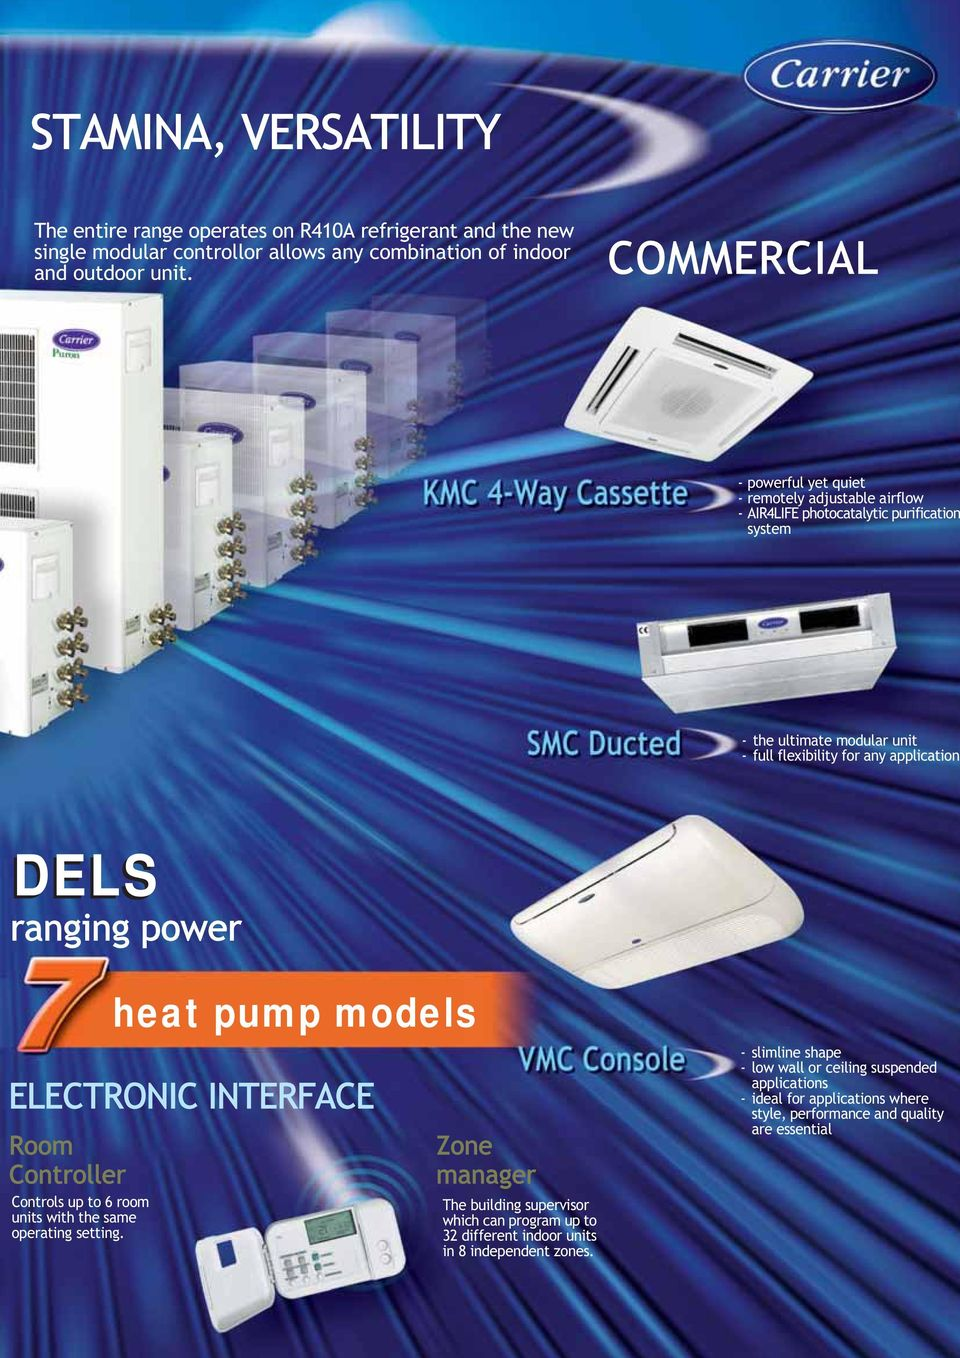 DELS ranging power Room Controller Controls up to 6 room units with the same operating setting.